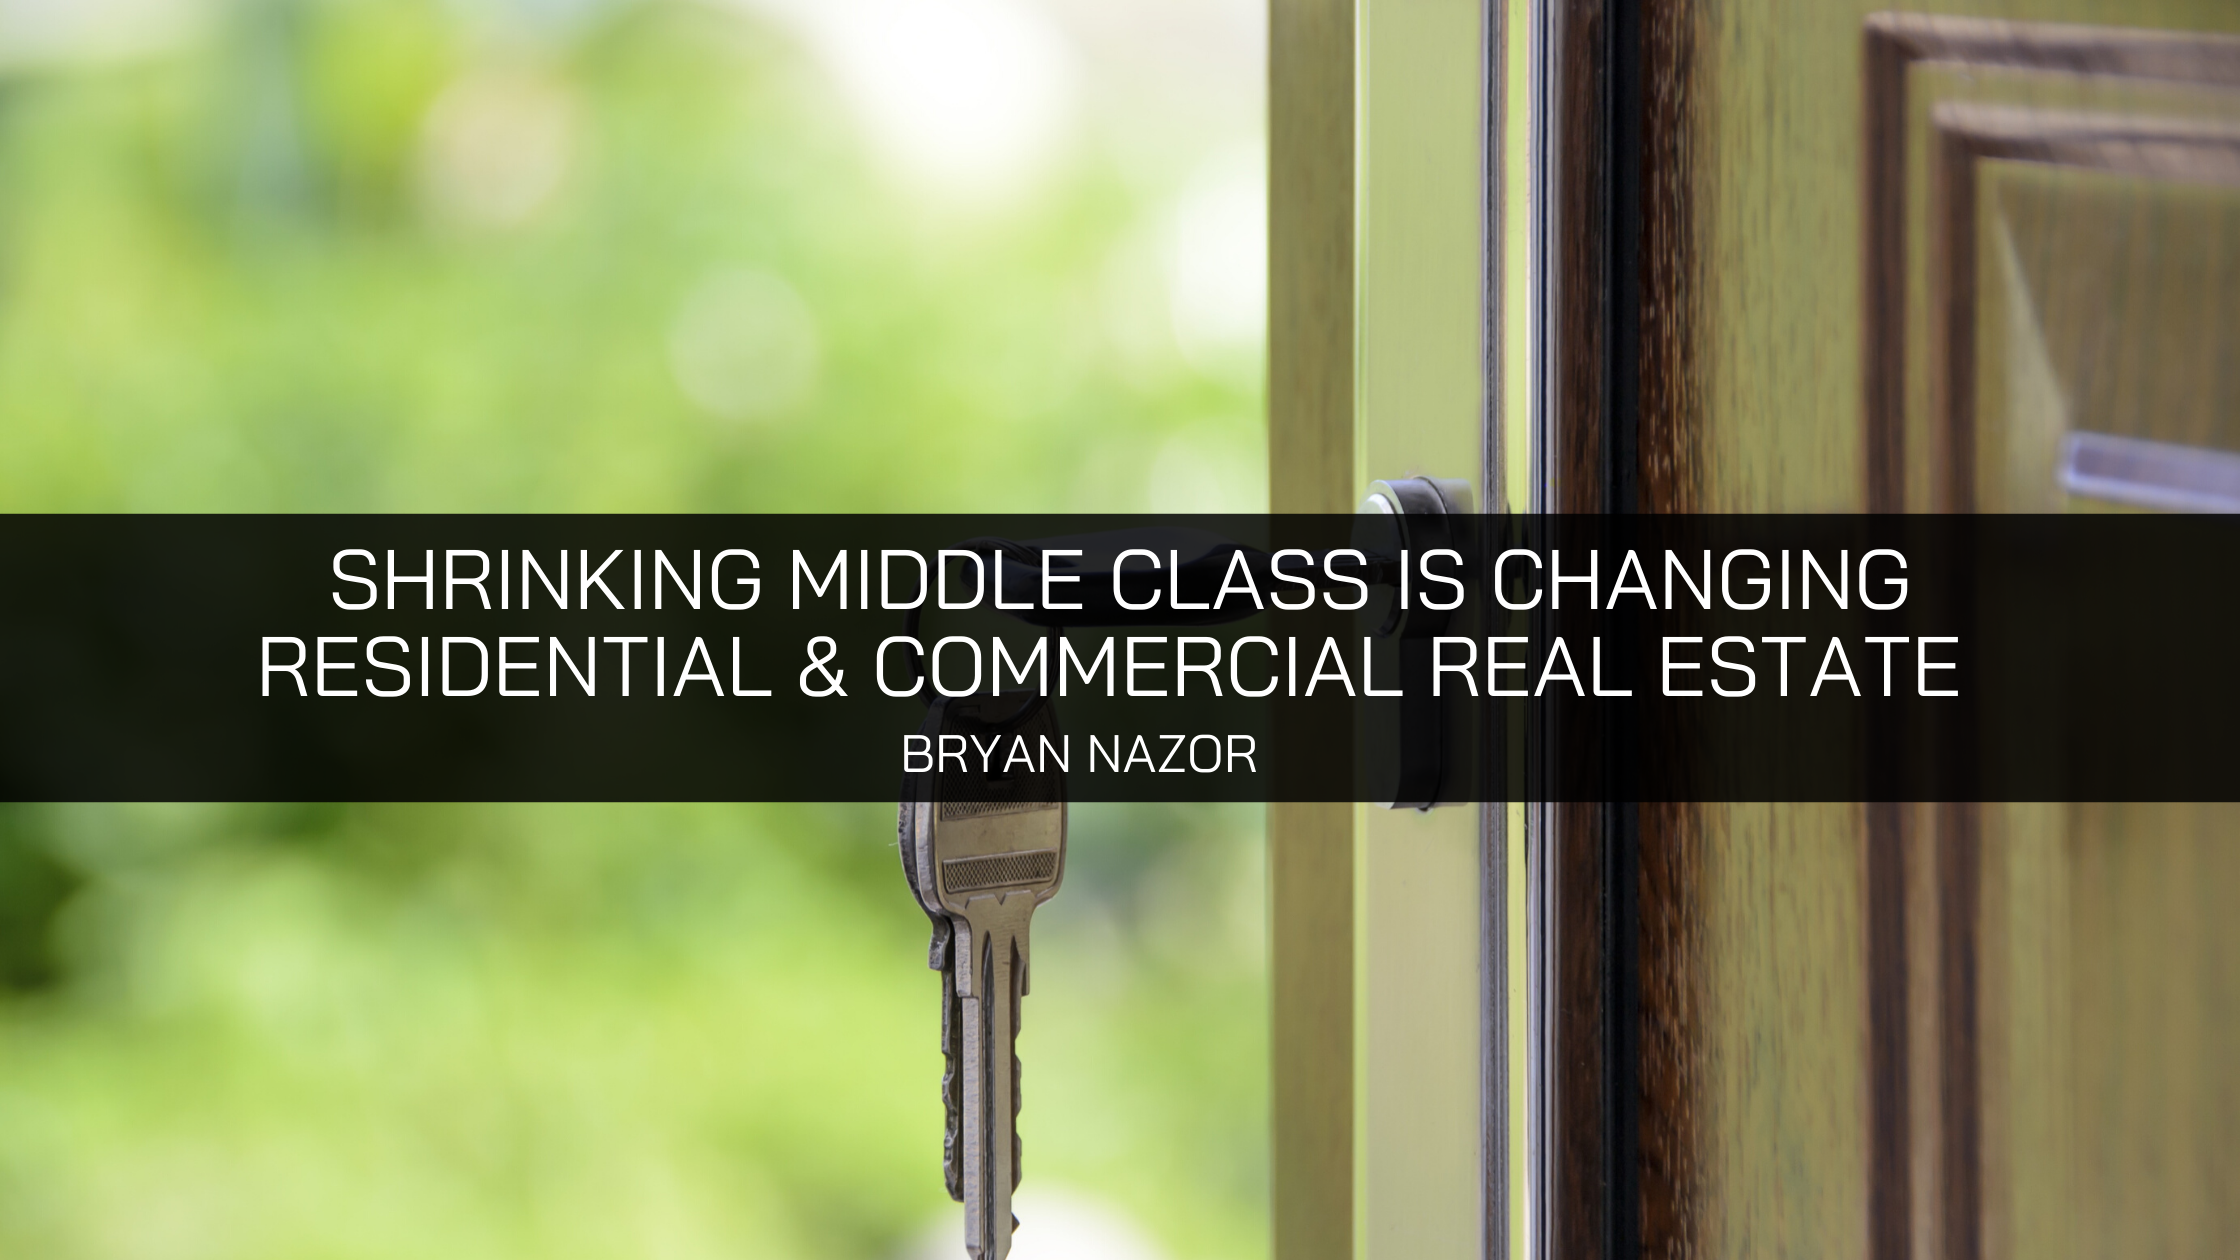 Bryan Nazor: Shrinking Middle Class Is Changing Residential and Commercial Real Estate Markets